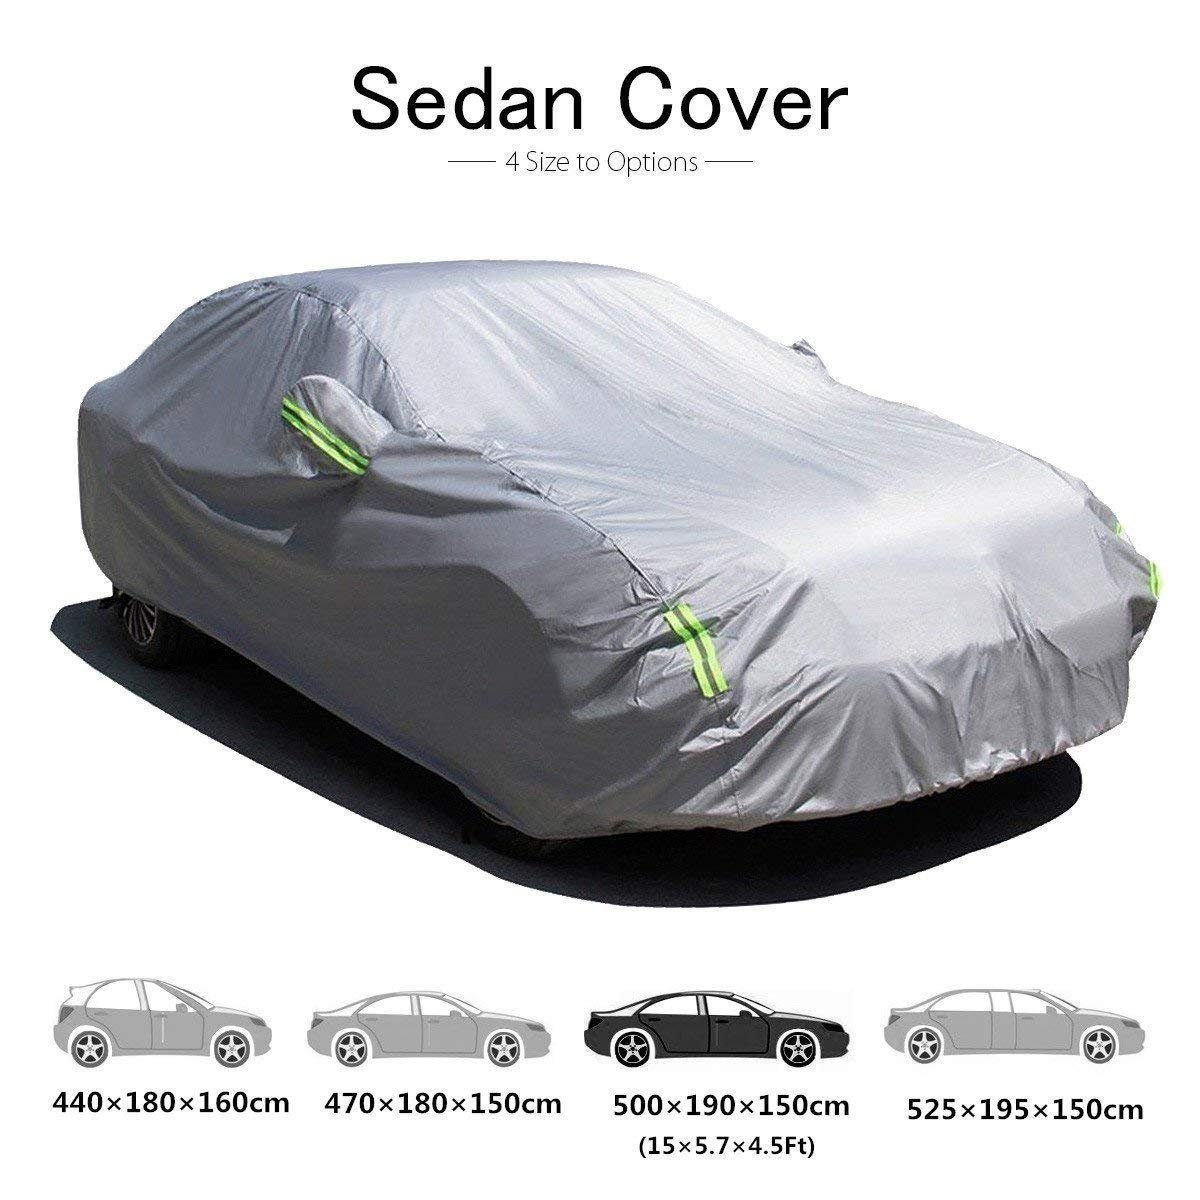 470 * 180 * 150cm MATCC Car Cover Sedan Cover Waterproof Snow Cover All Weather Protect from Moisture Snow Frost Corrosion Dust Outdoor UV Protection Fit 185 Inch